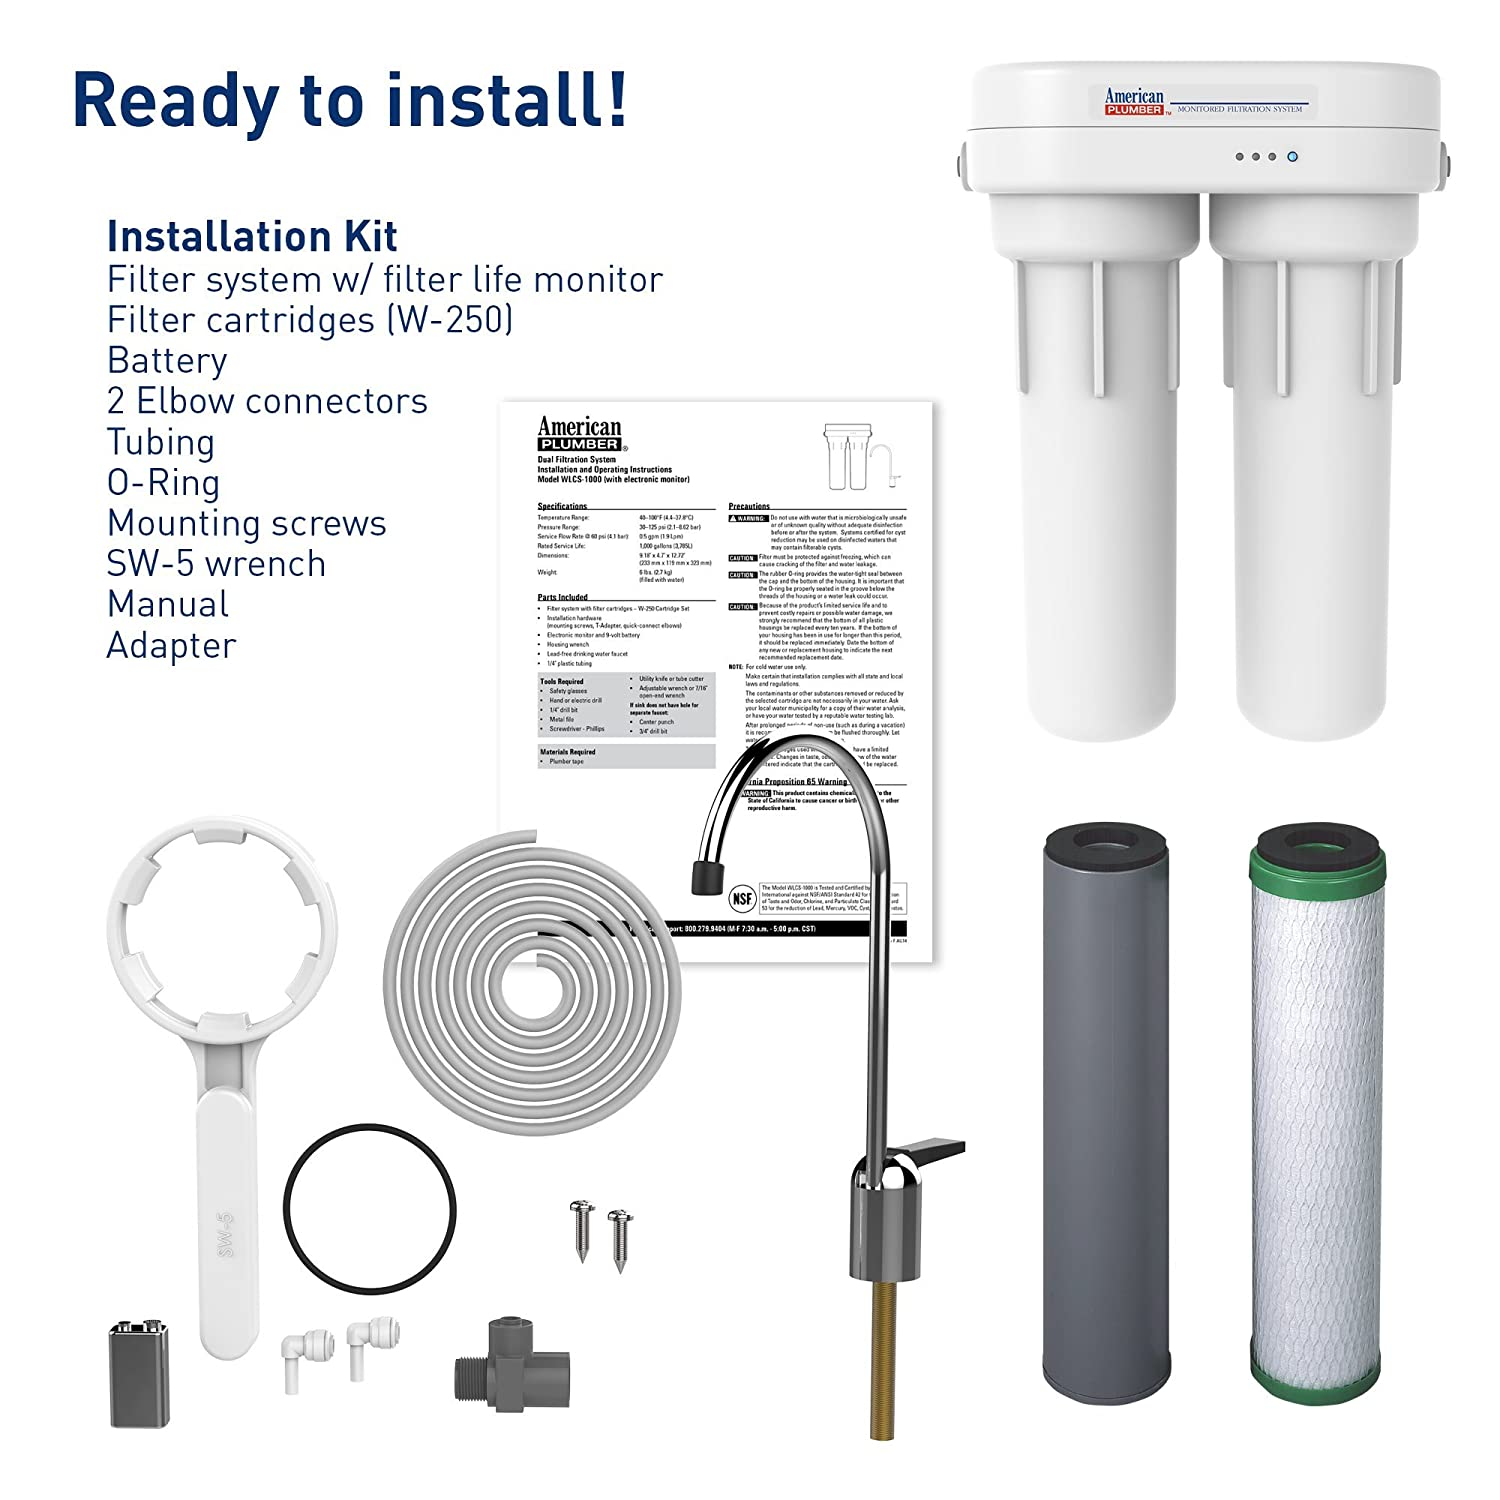 American Plumber Wlcs 1000 Under Sink Water Filter Counter Model Requires Plumbing And Electrical Work Your System Home Improvement